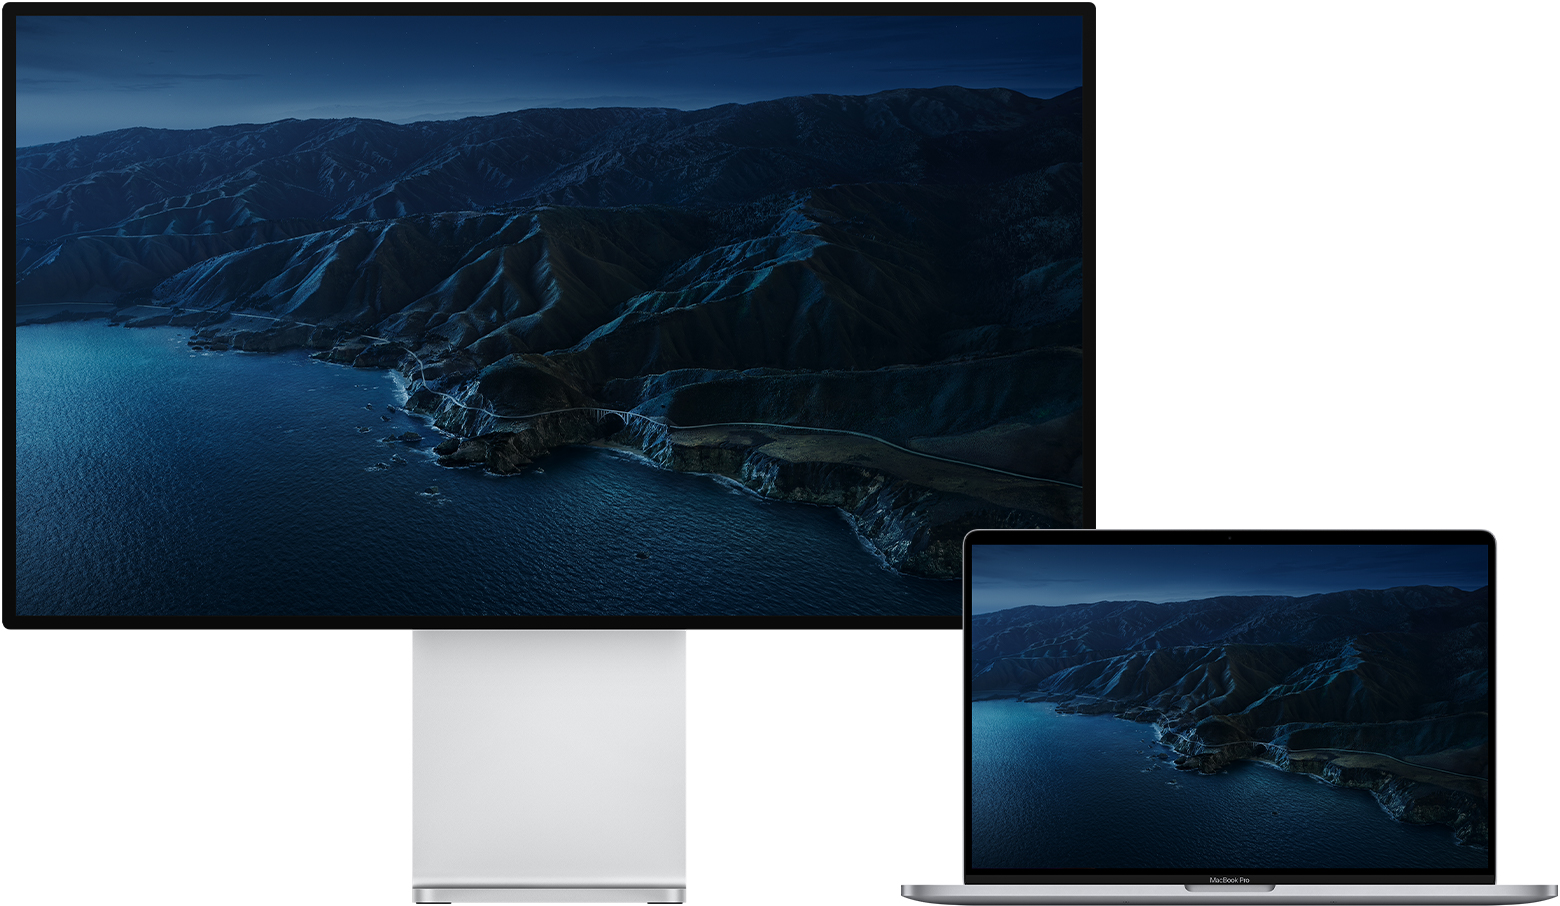 MacBook Pro and Pro Display XDR together showing macOS desktop